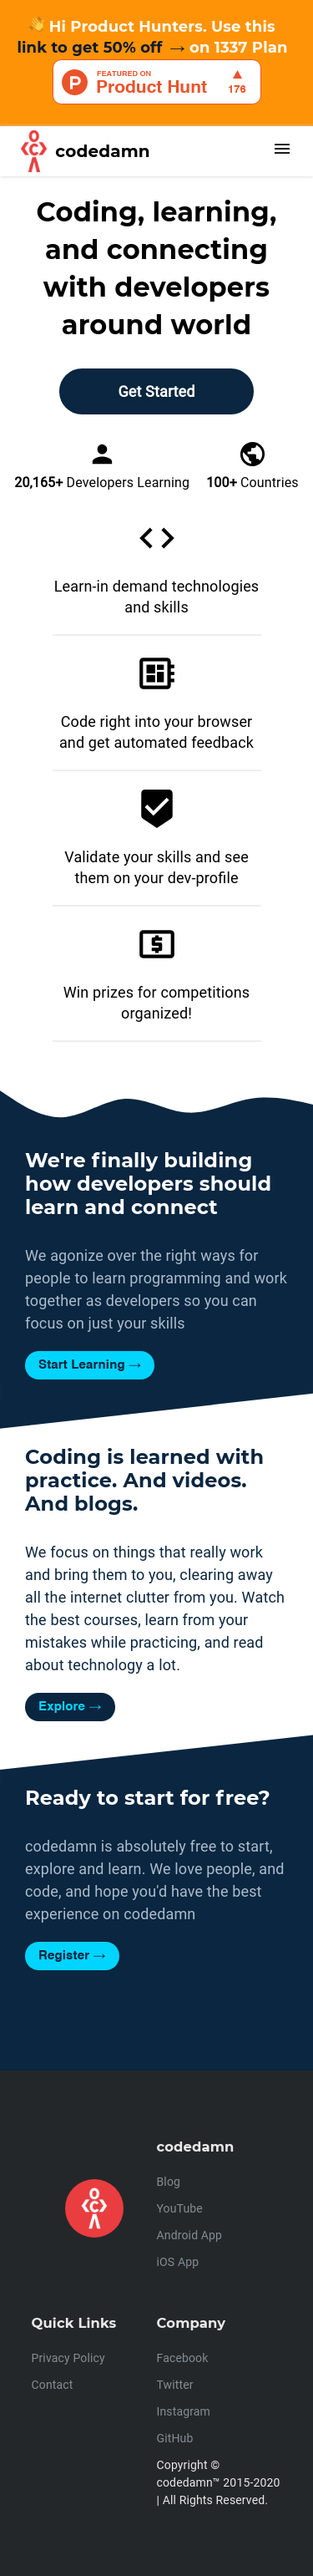 Example of Design for Jobs & Education, Education, Mobile Landing Page by codedamn.com | Mobile Landing Page Design